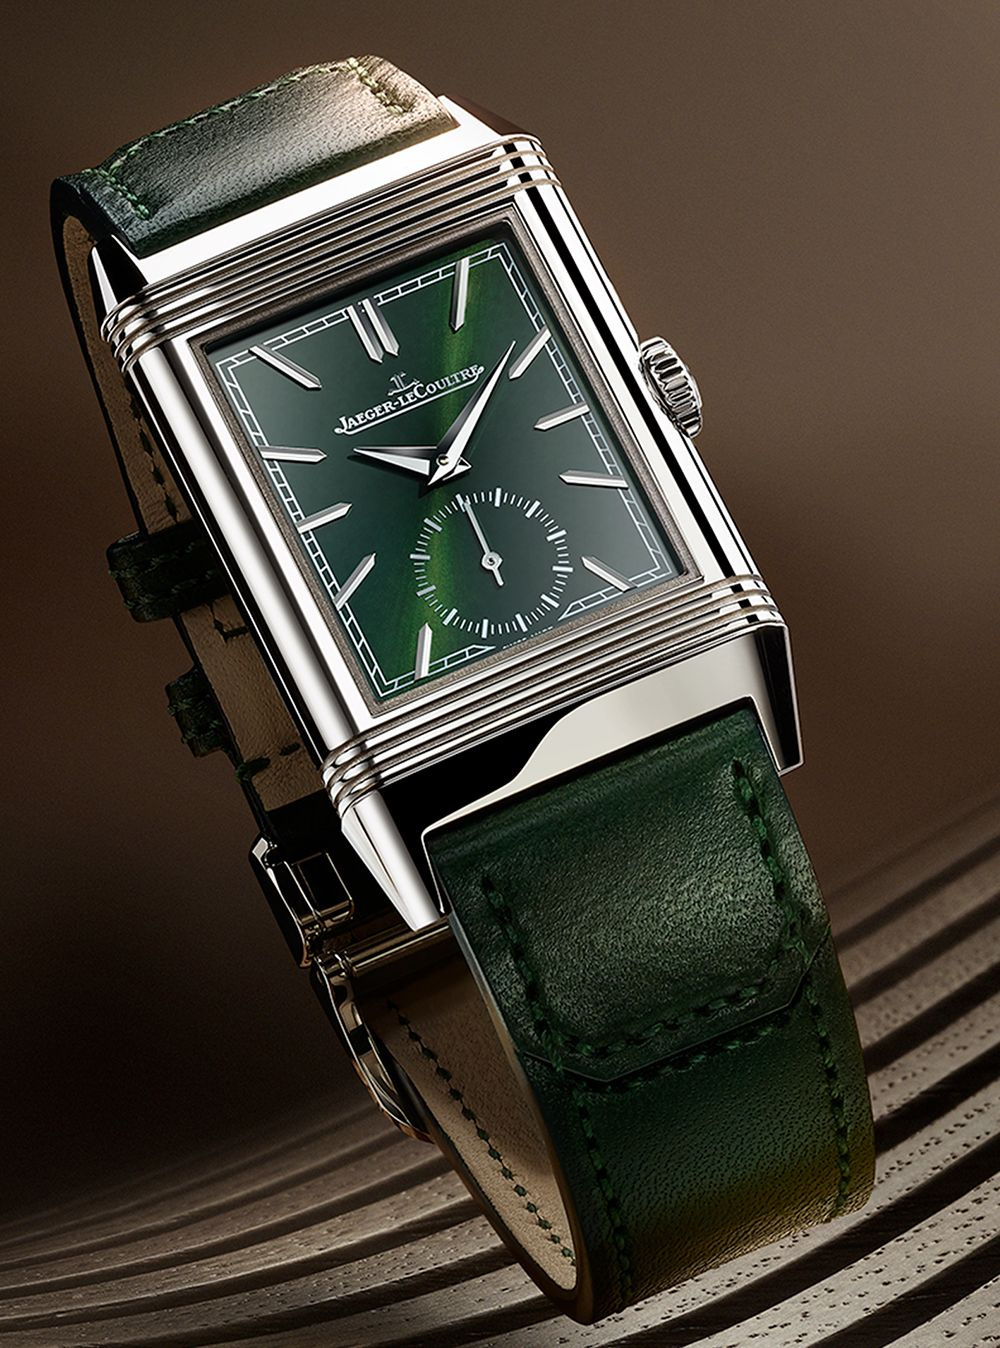 Reverso Tribute Small Seconds 翻轉系列小秒針腕錶綠色款by Jaeger-LeCoultre。